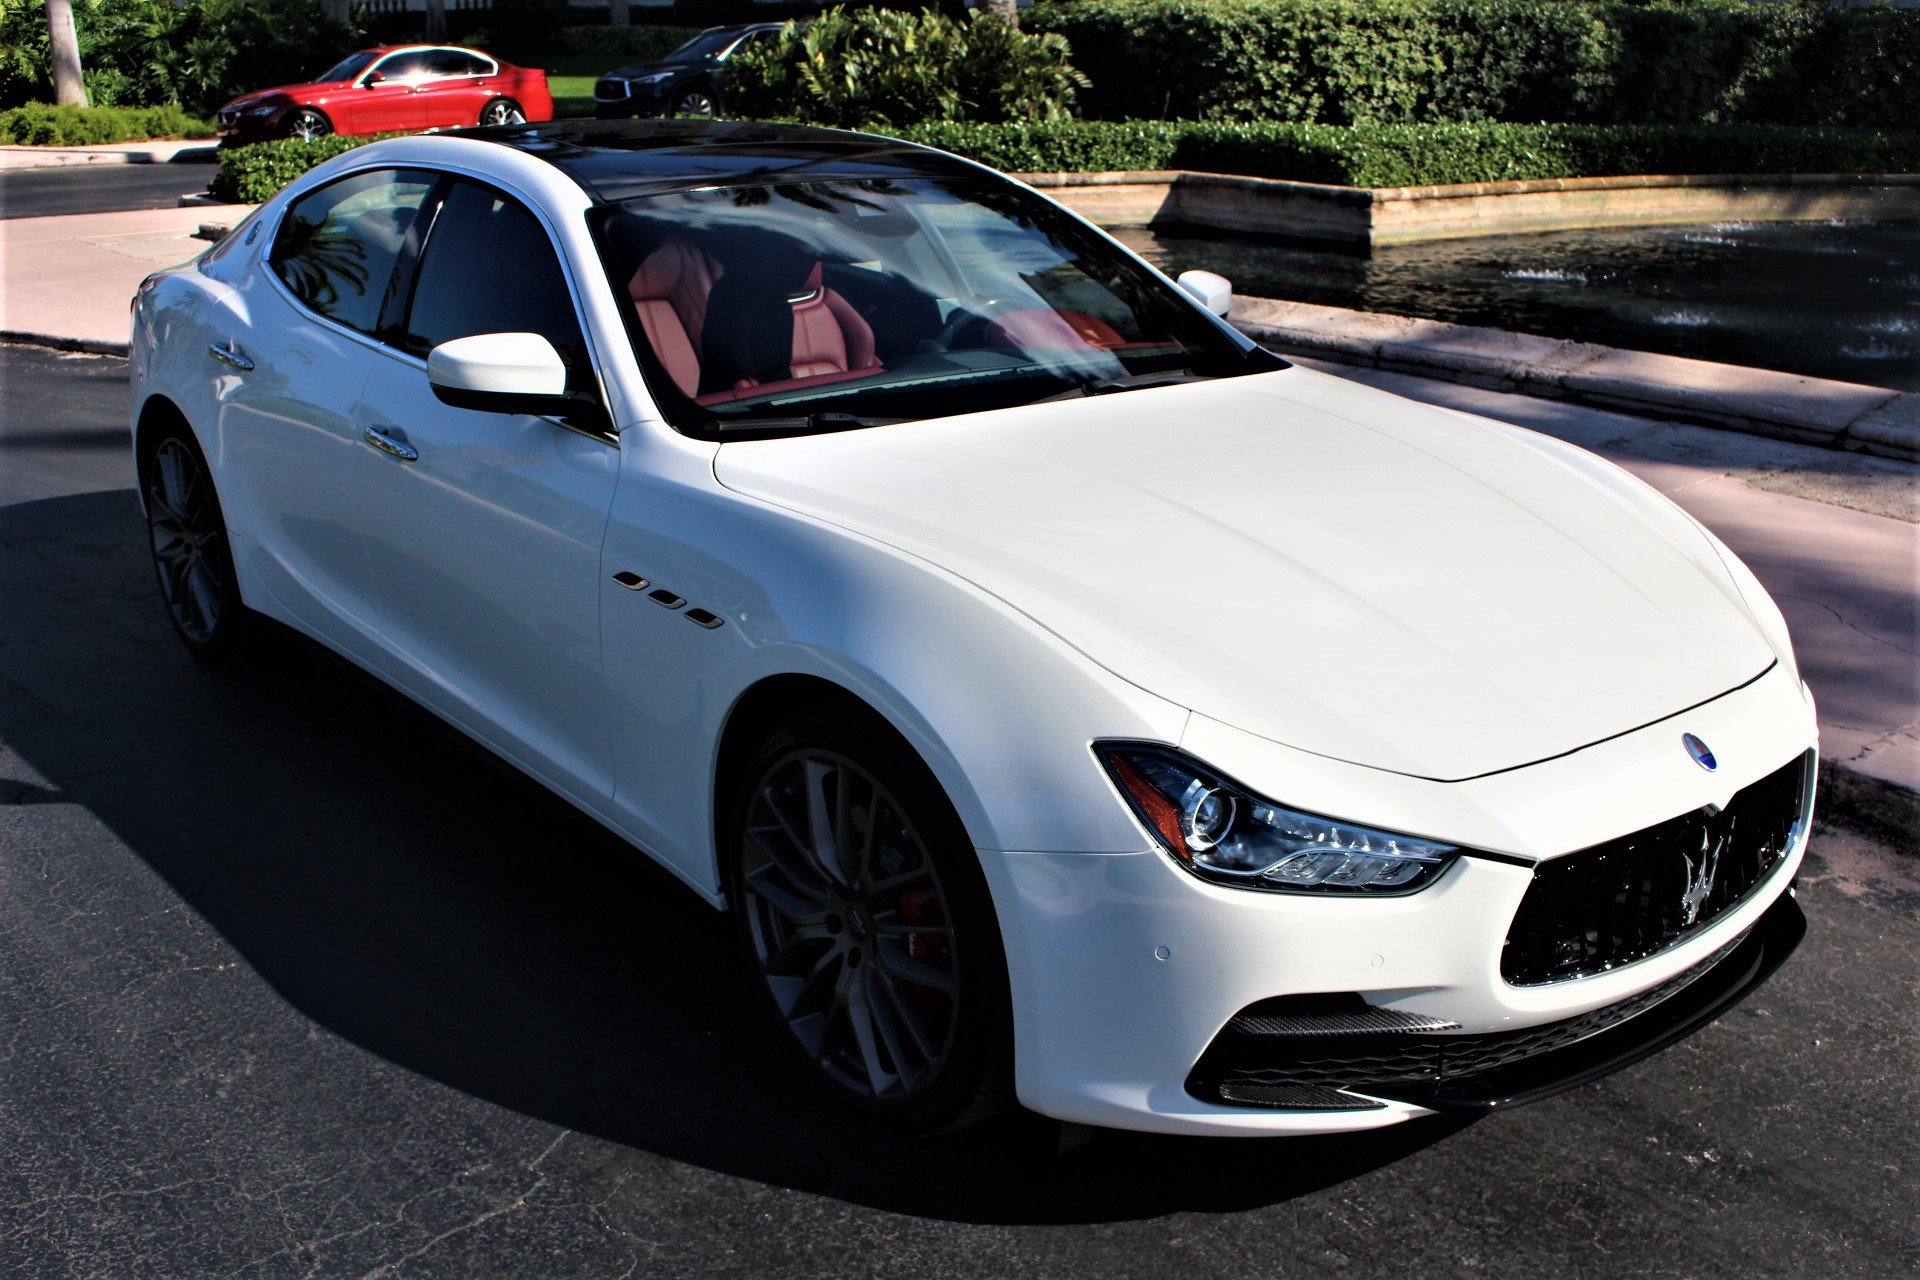 Used 2017 Maserati Ghibli S S for sale Sold at The Gables Sports Cars in Miami FL 33146 1